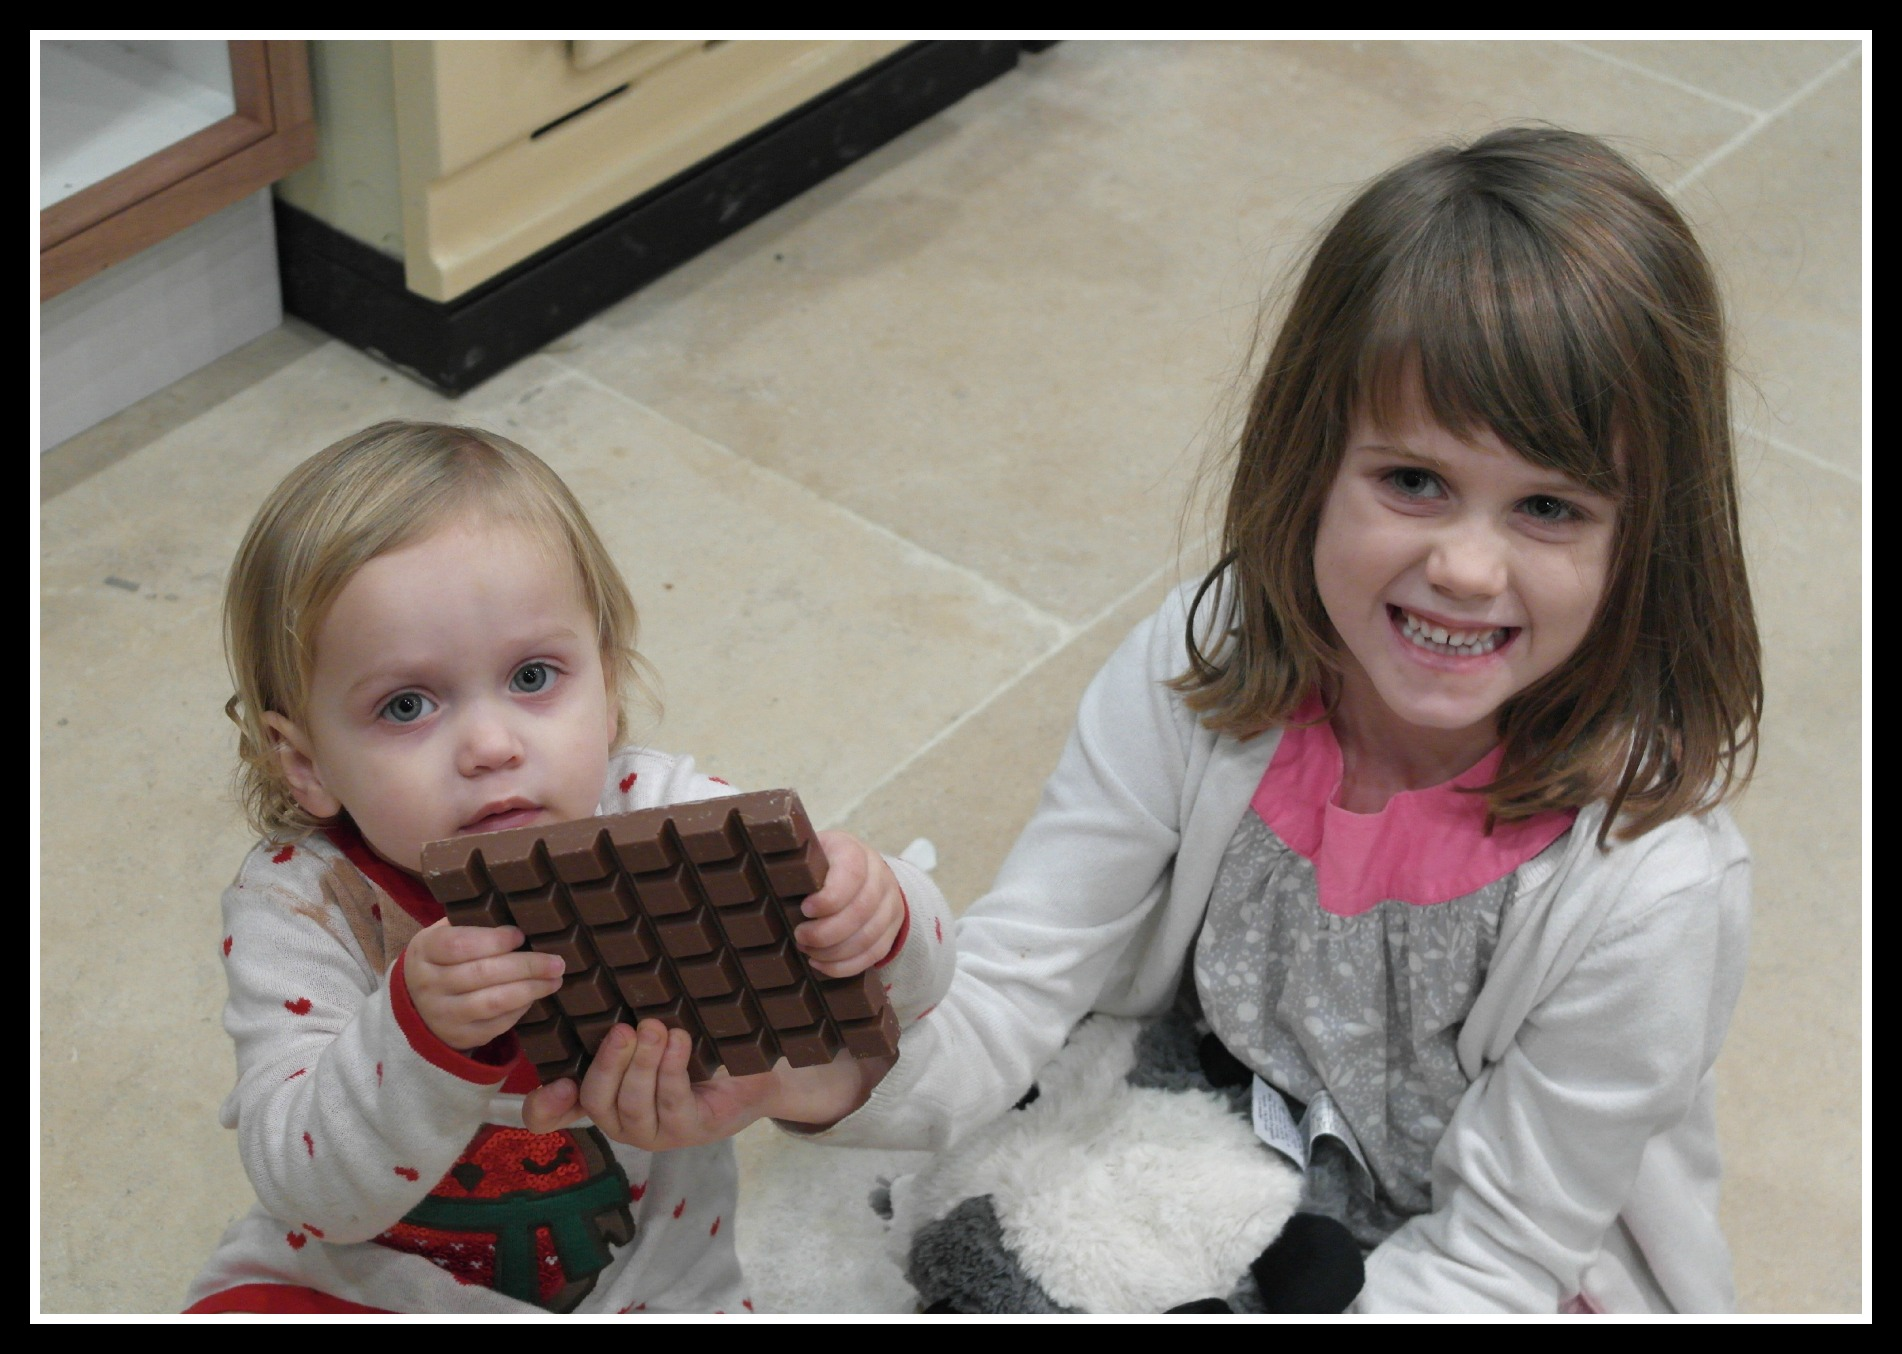 Two kids, one huge bar of chocolate. What happened next?